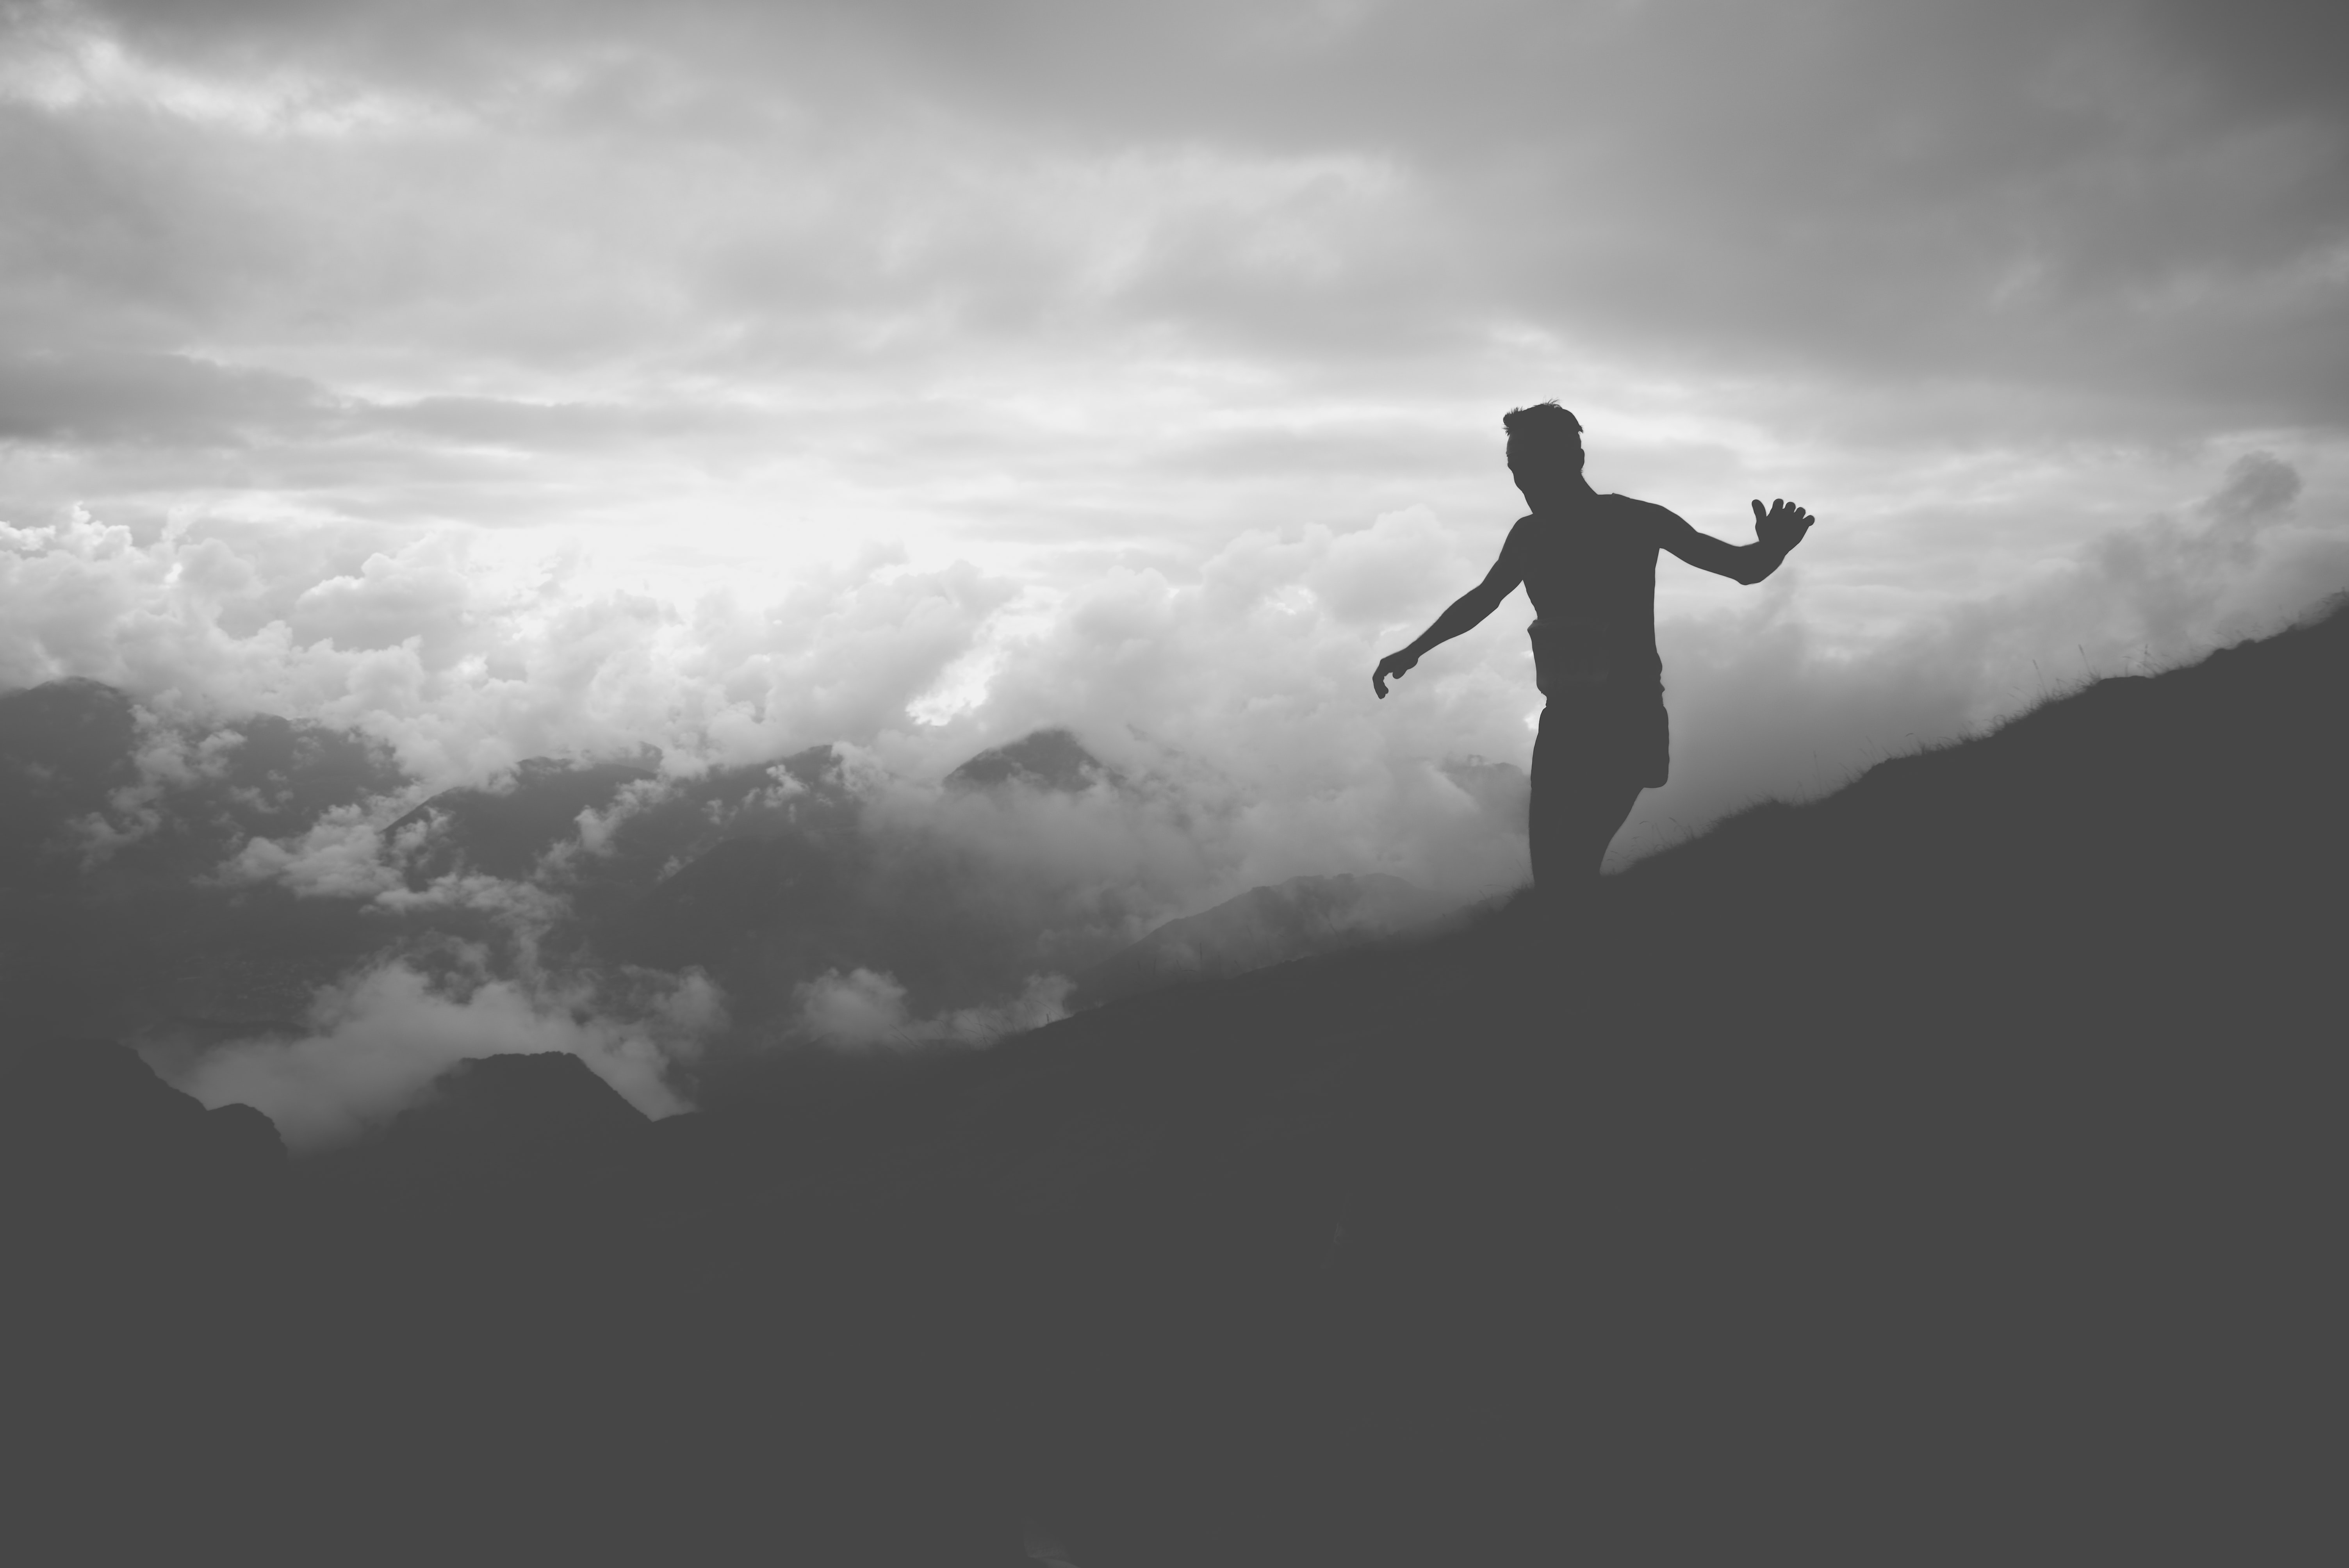 silhouette of man on mountain hill